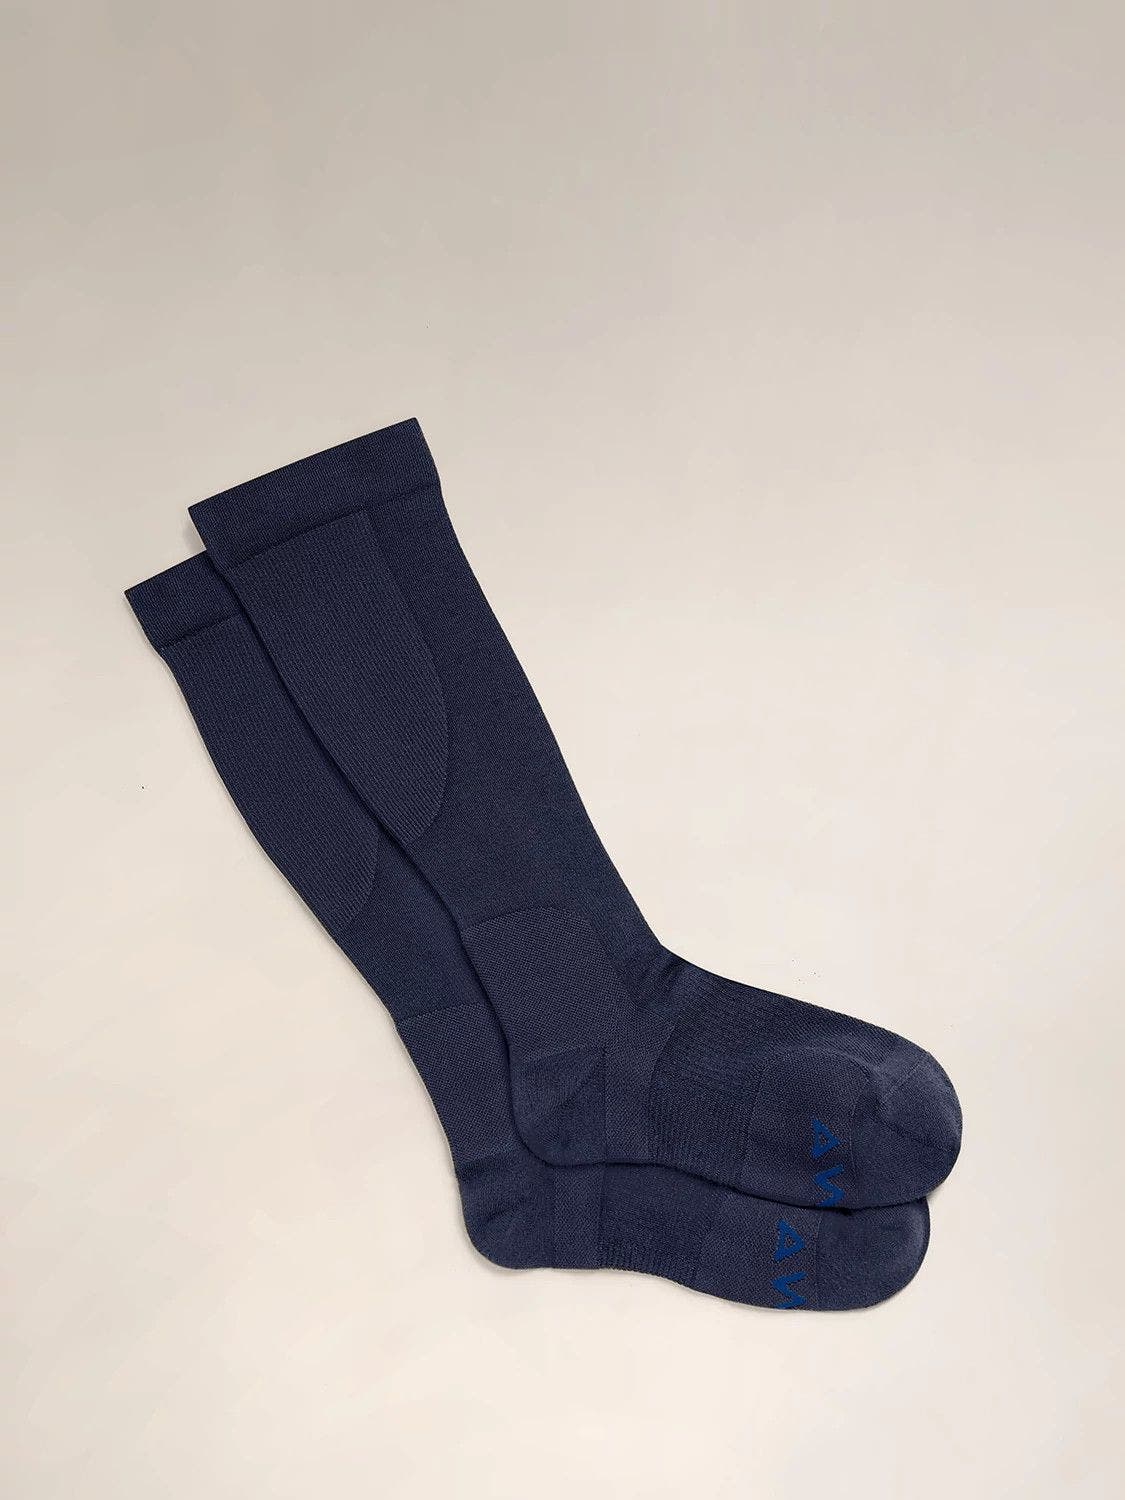 A pair of navy compression socks for travel comfort.